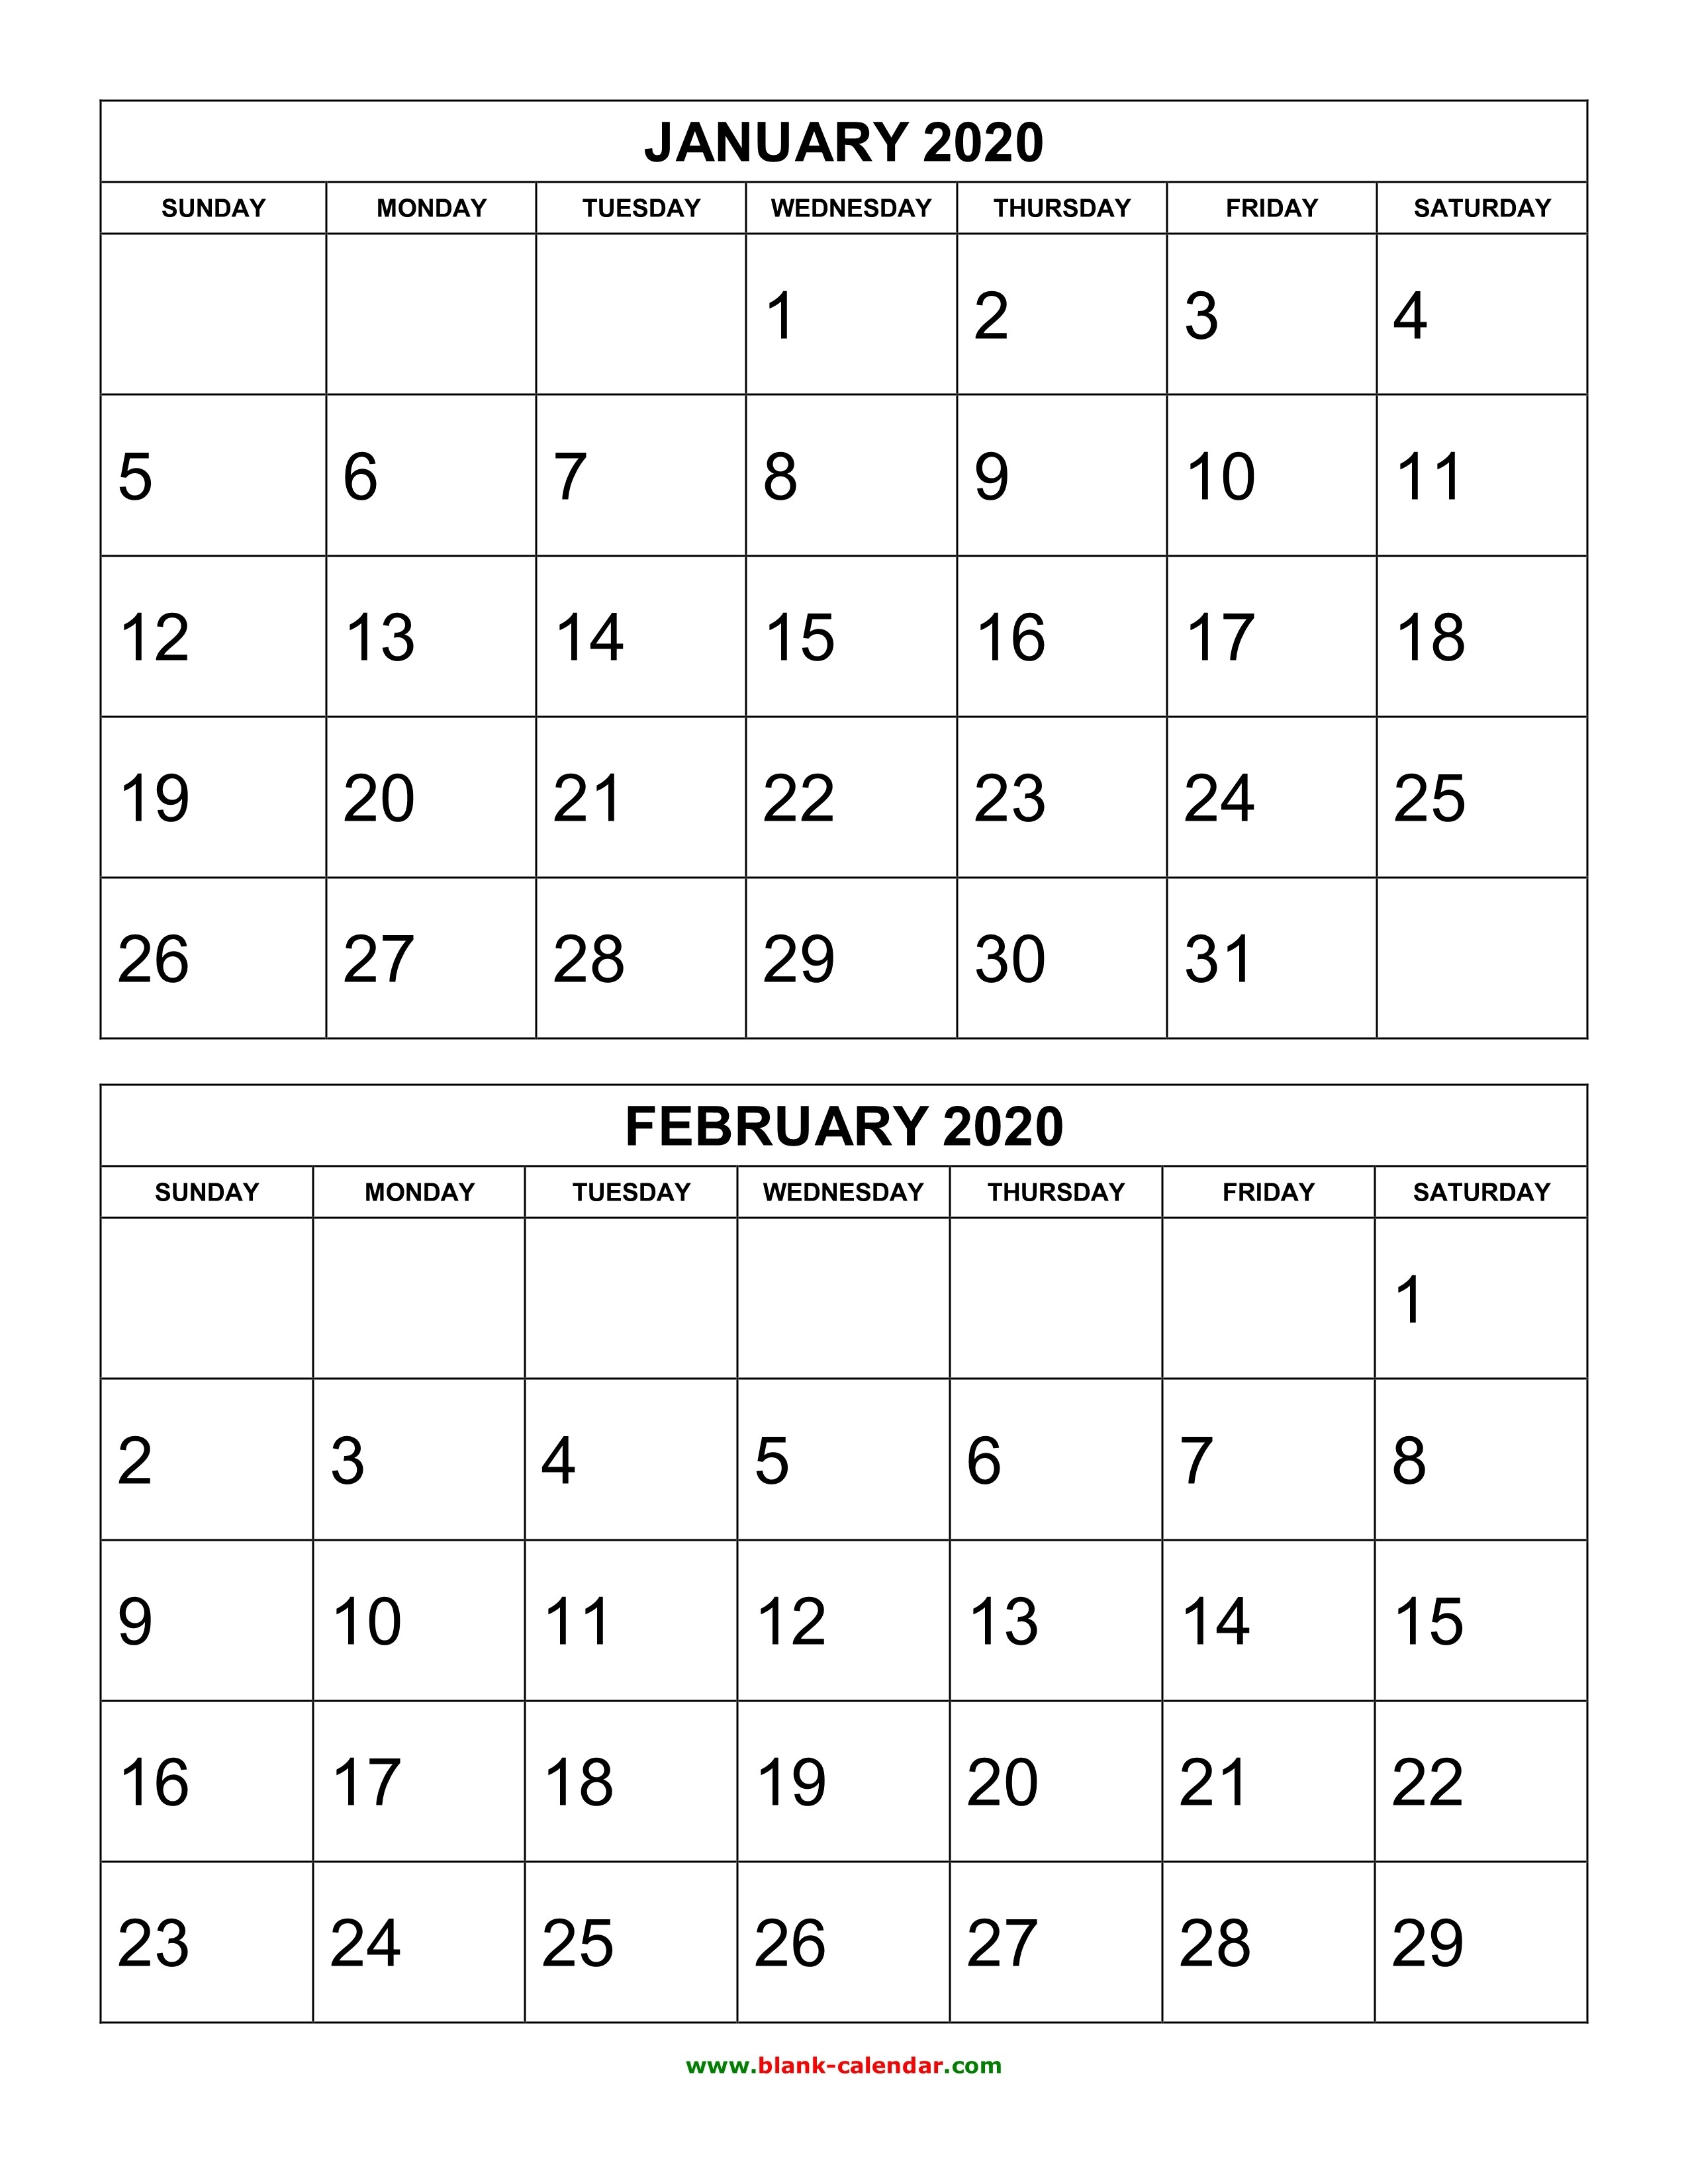 Free Download Printable Calendar 2020, 2 Months Per Page, 6-Free 2 Page Calendar Templates 2020